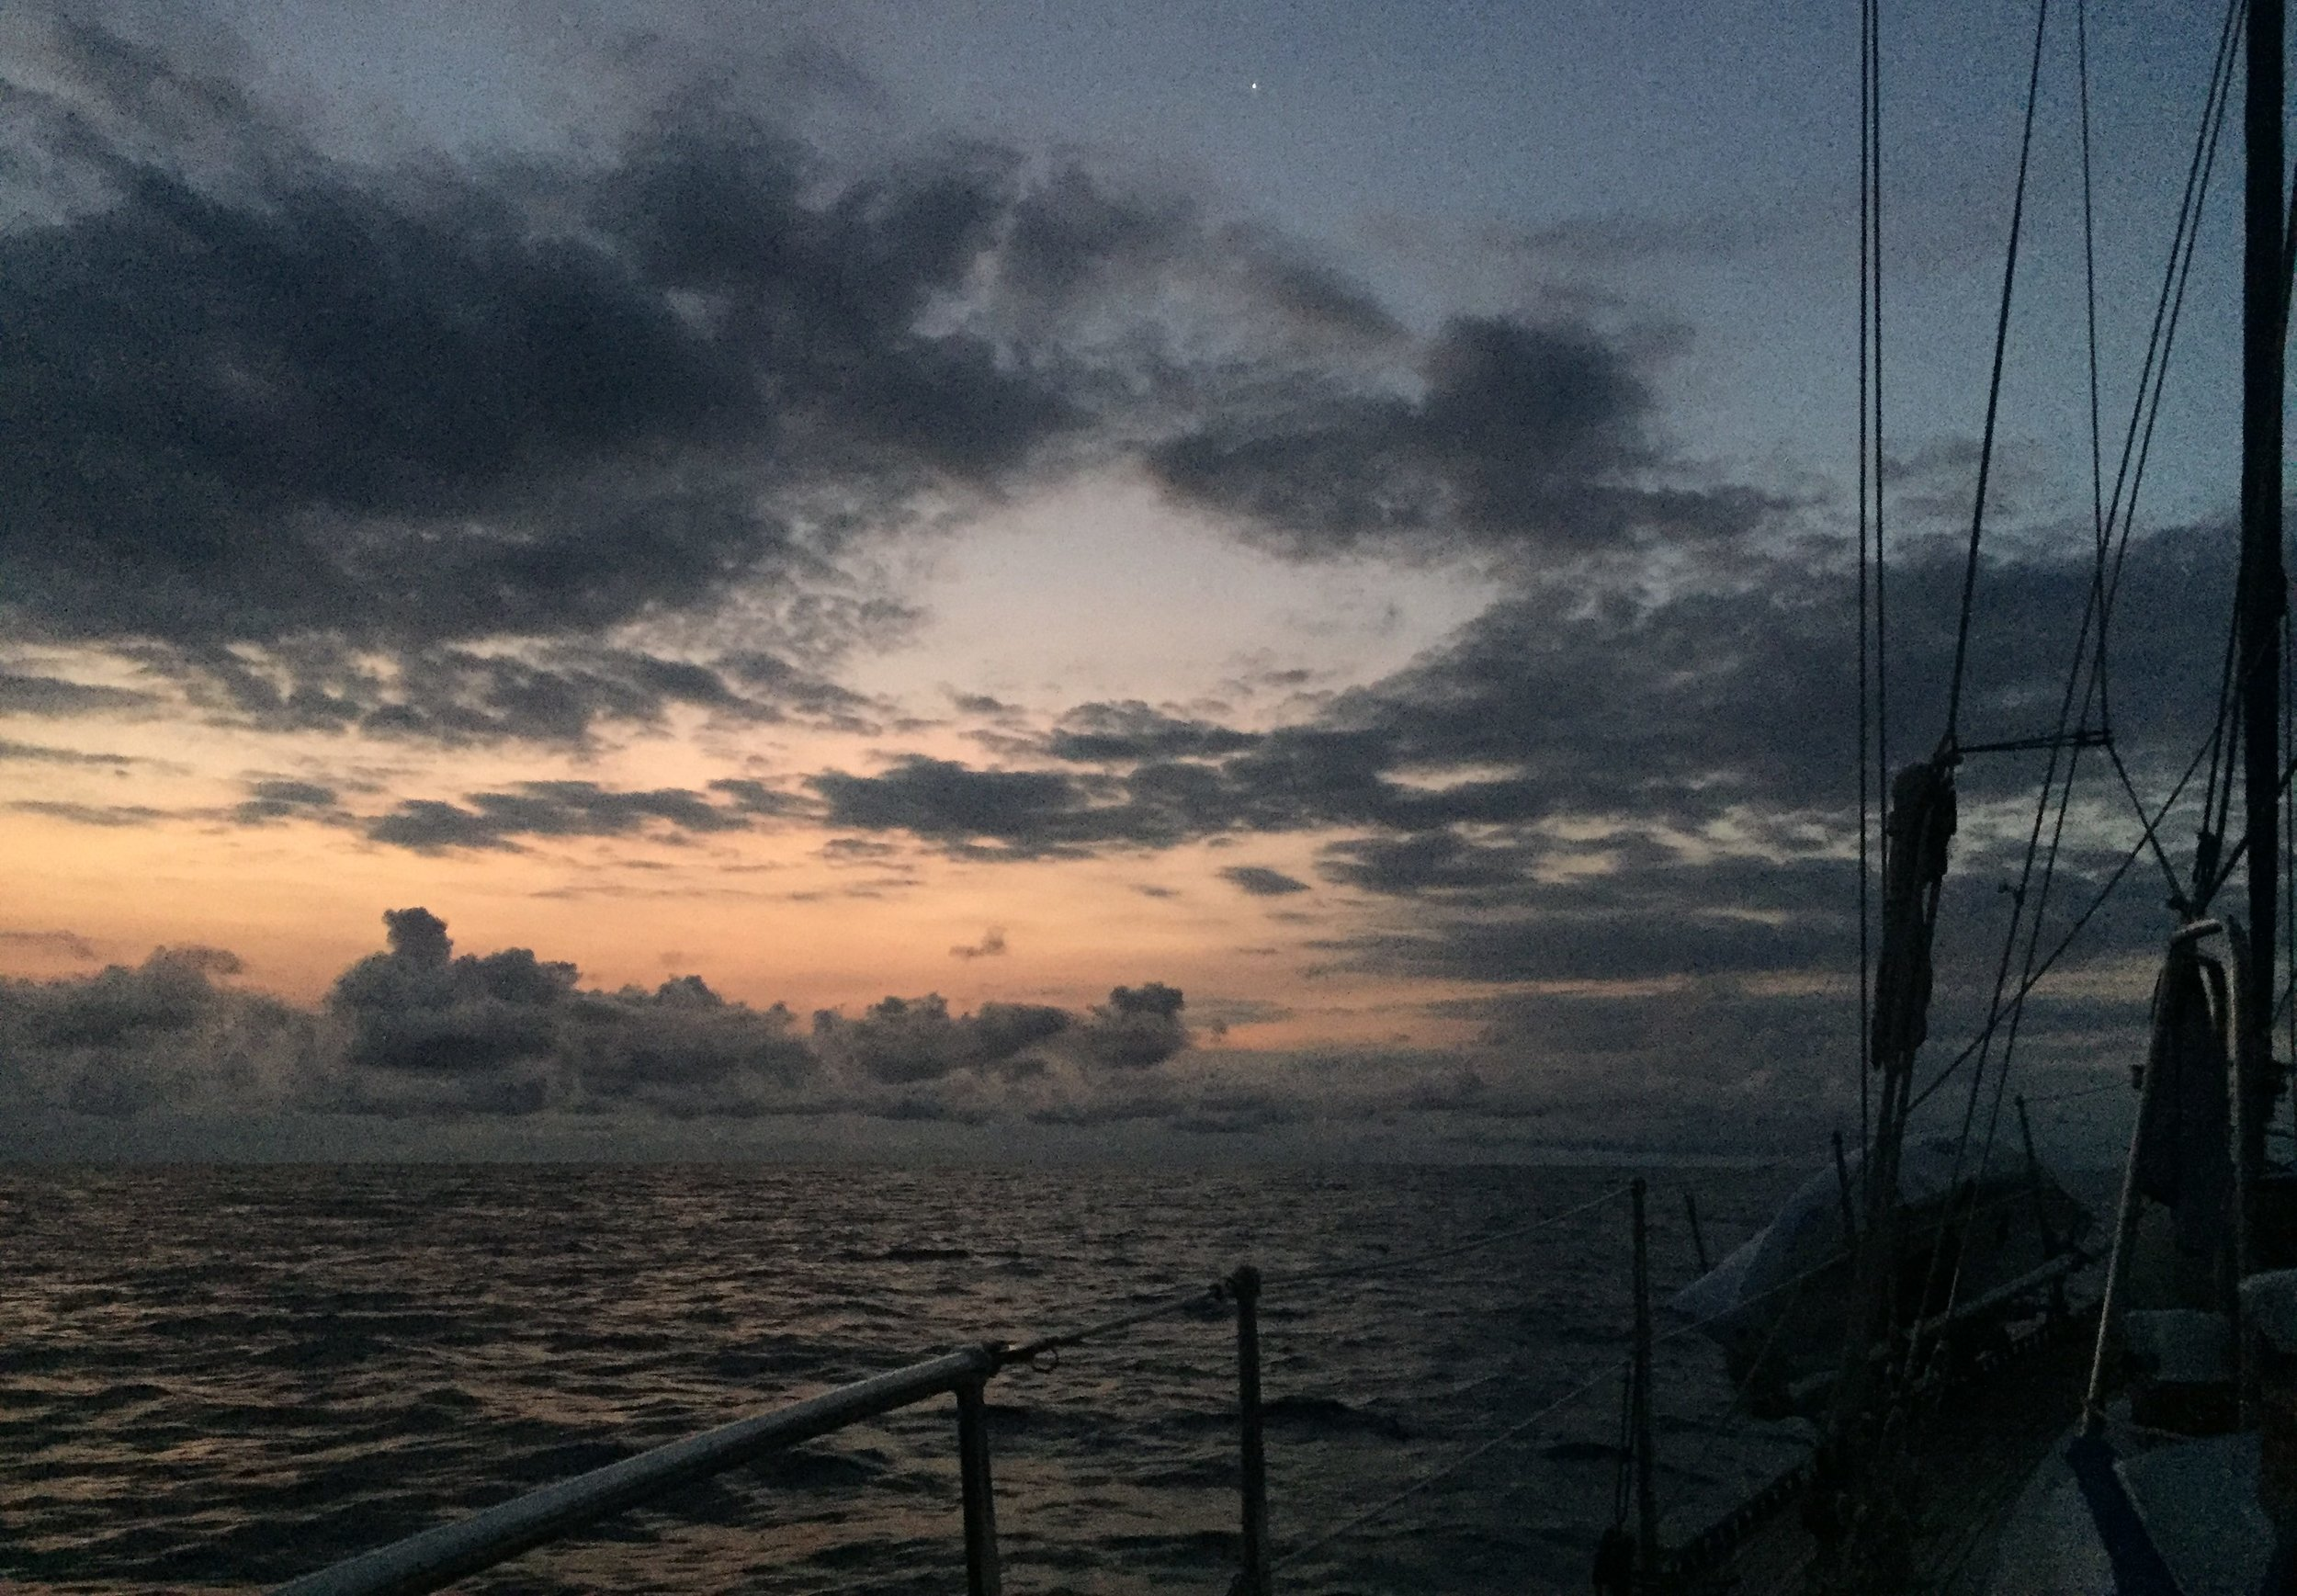 Motoring into our first night crossing the Gulf of Tehuantepec.